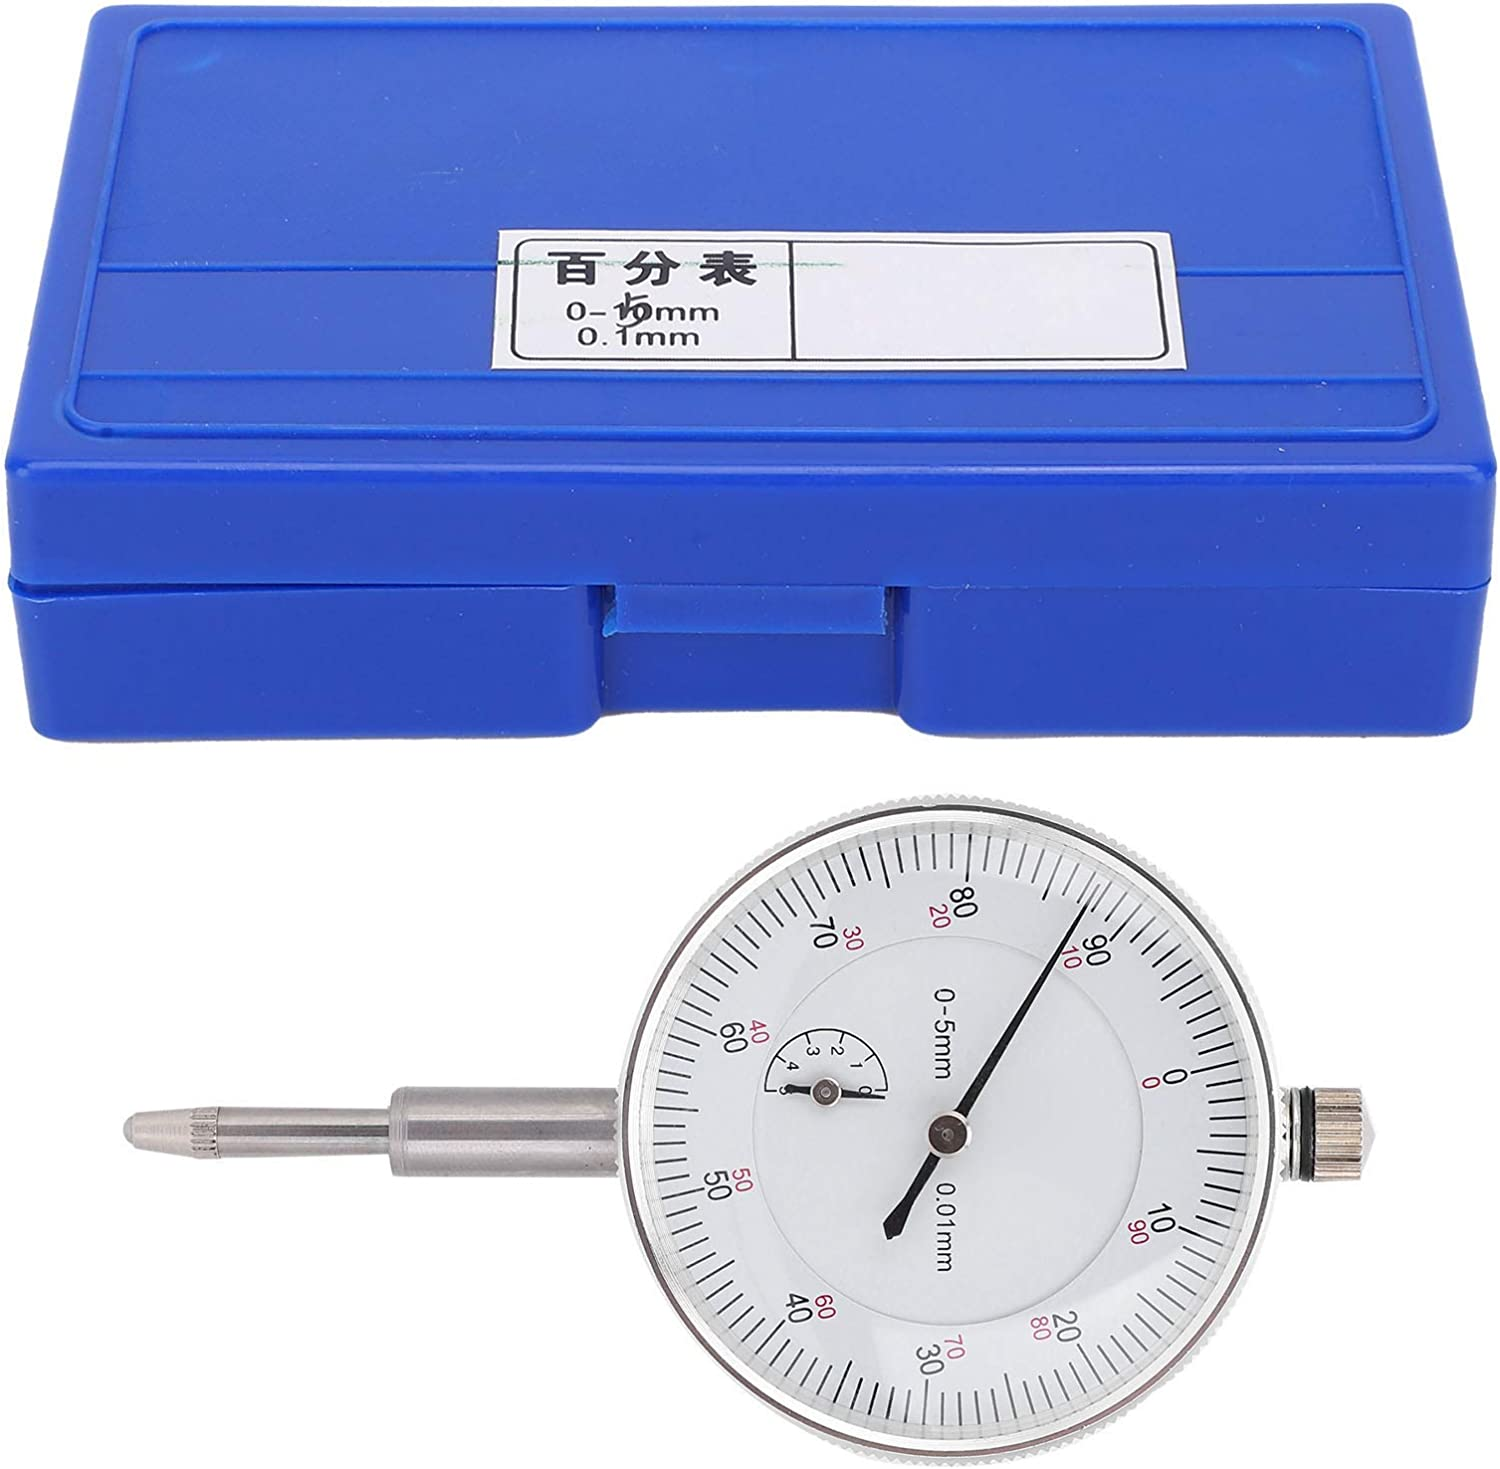 Super sale period limited Dial Indicator Industrial Tools Baltimore Mall High‑strength Quenching M